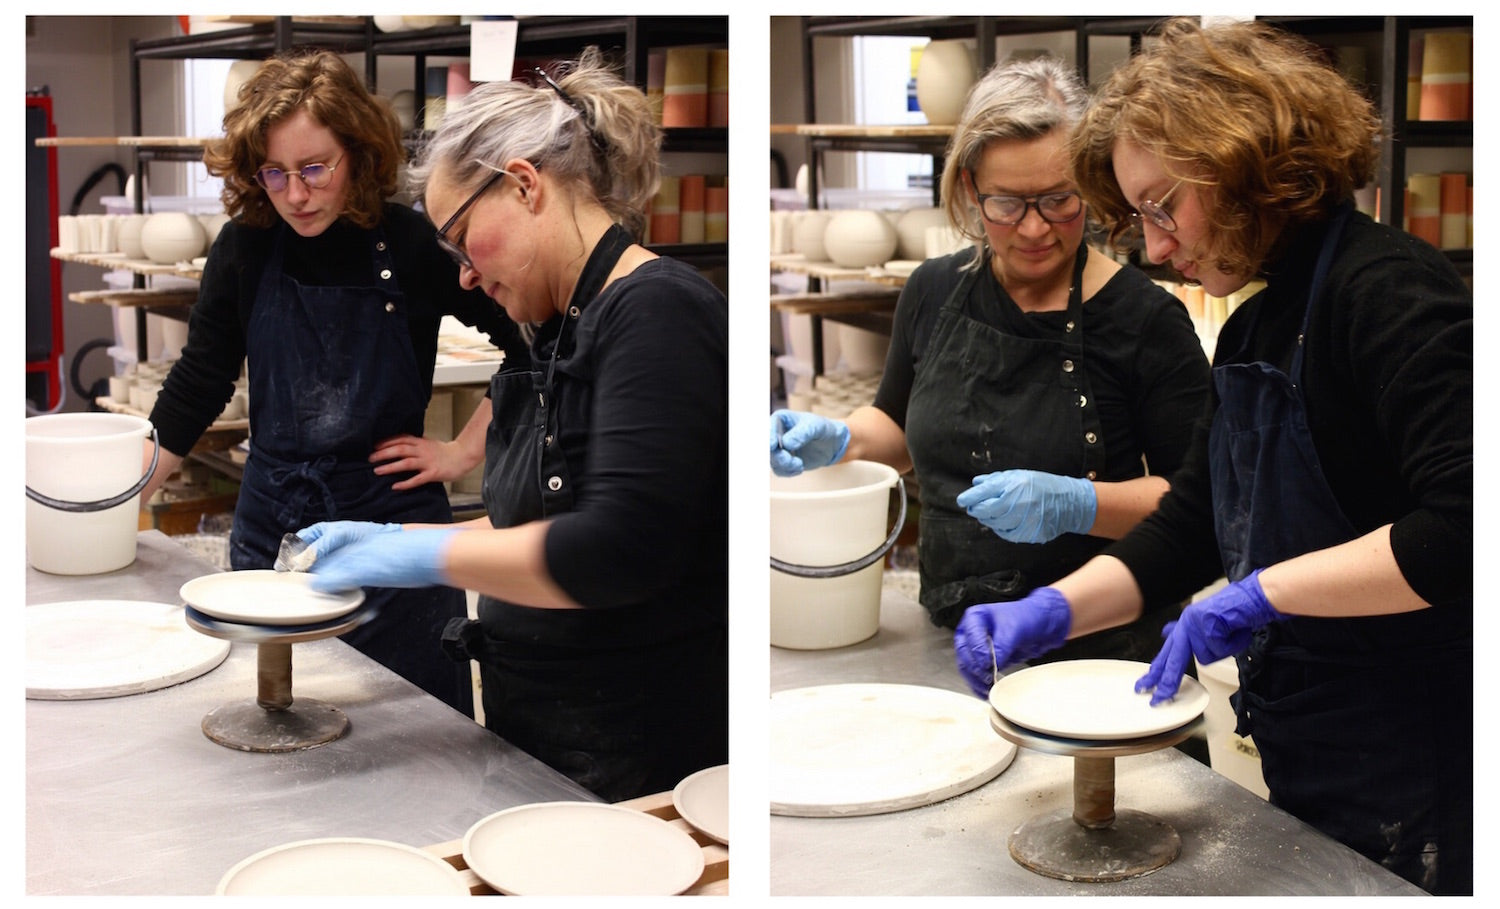 WAUW designs intern Louise learning how to make Tone plates in the ceramic studio in Copenhagen.